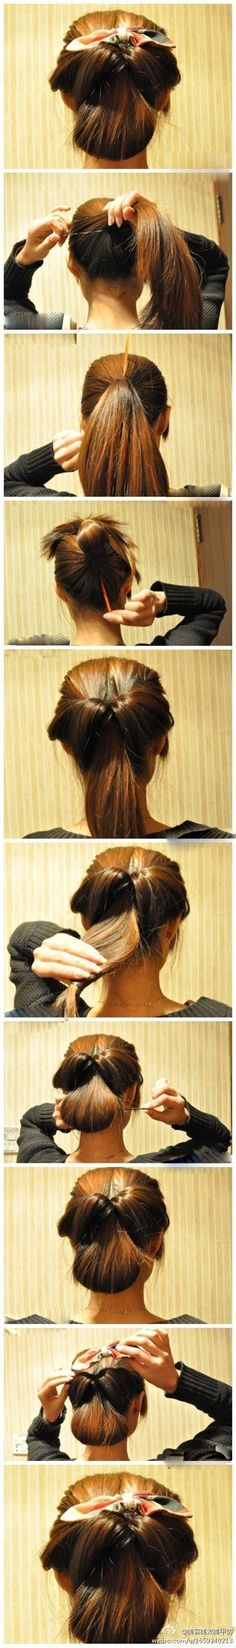 Beautiful hair style! I'm going to have to try this out.